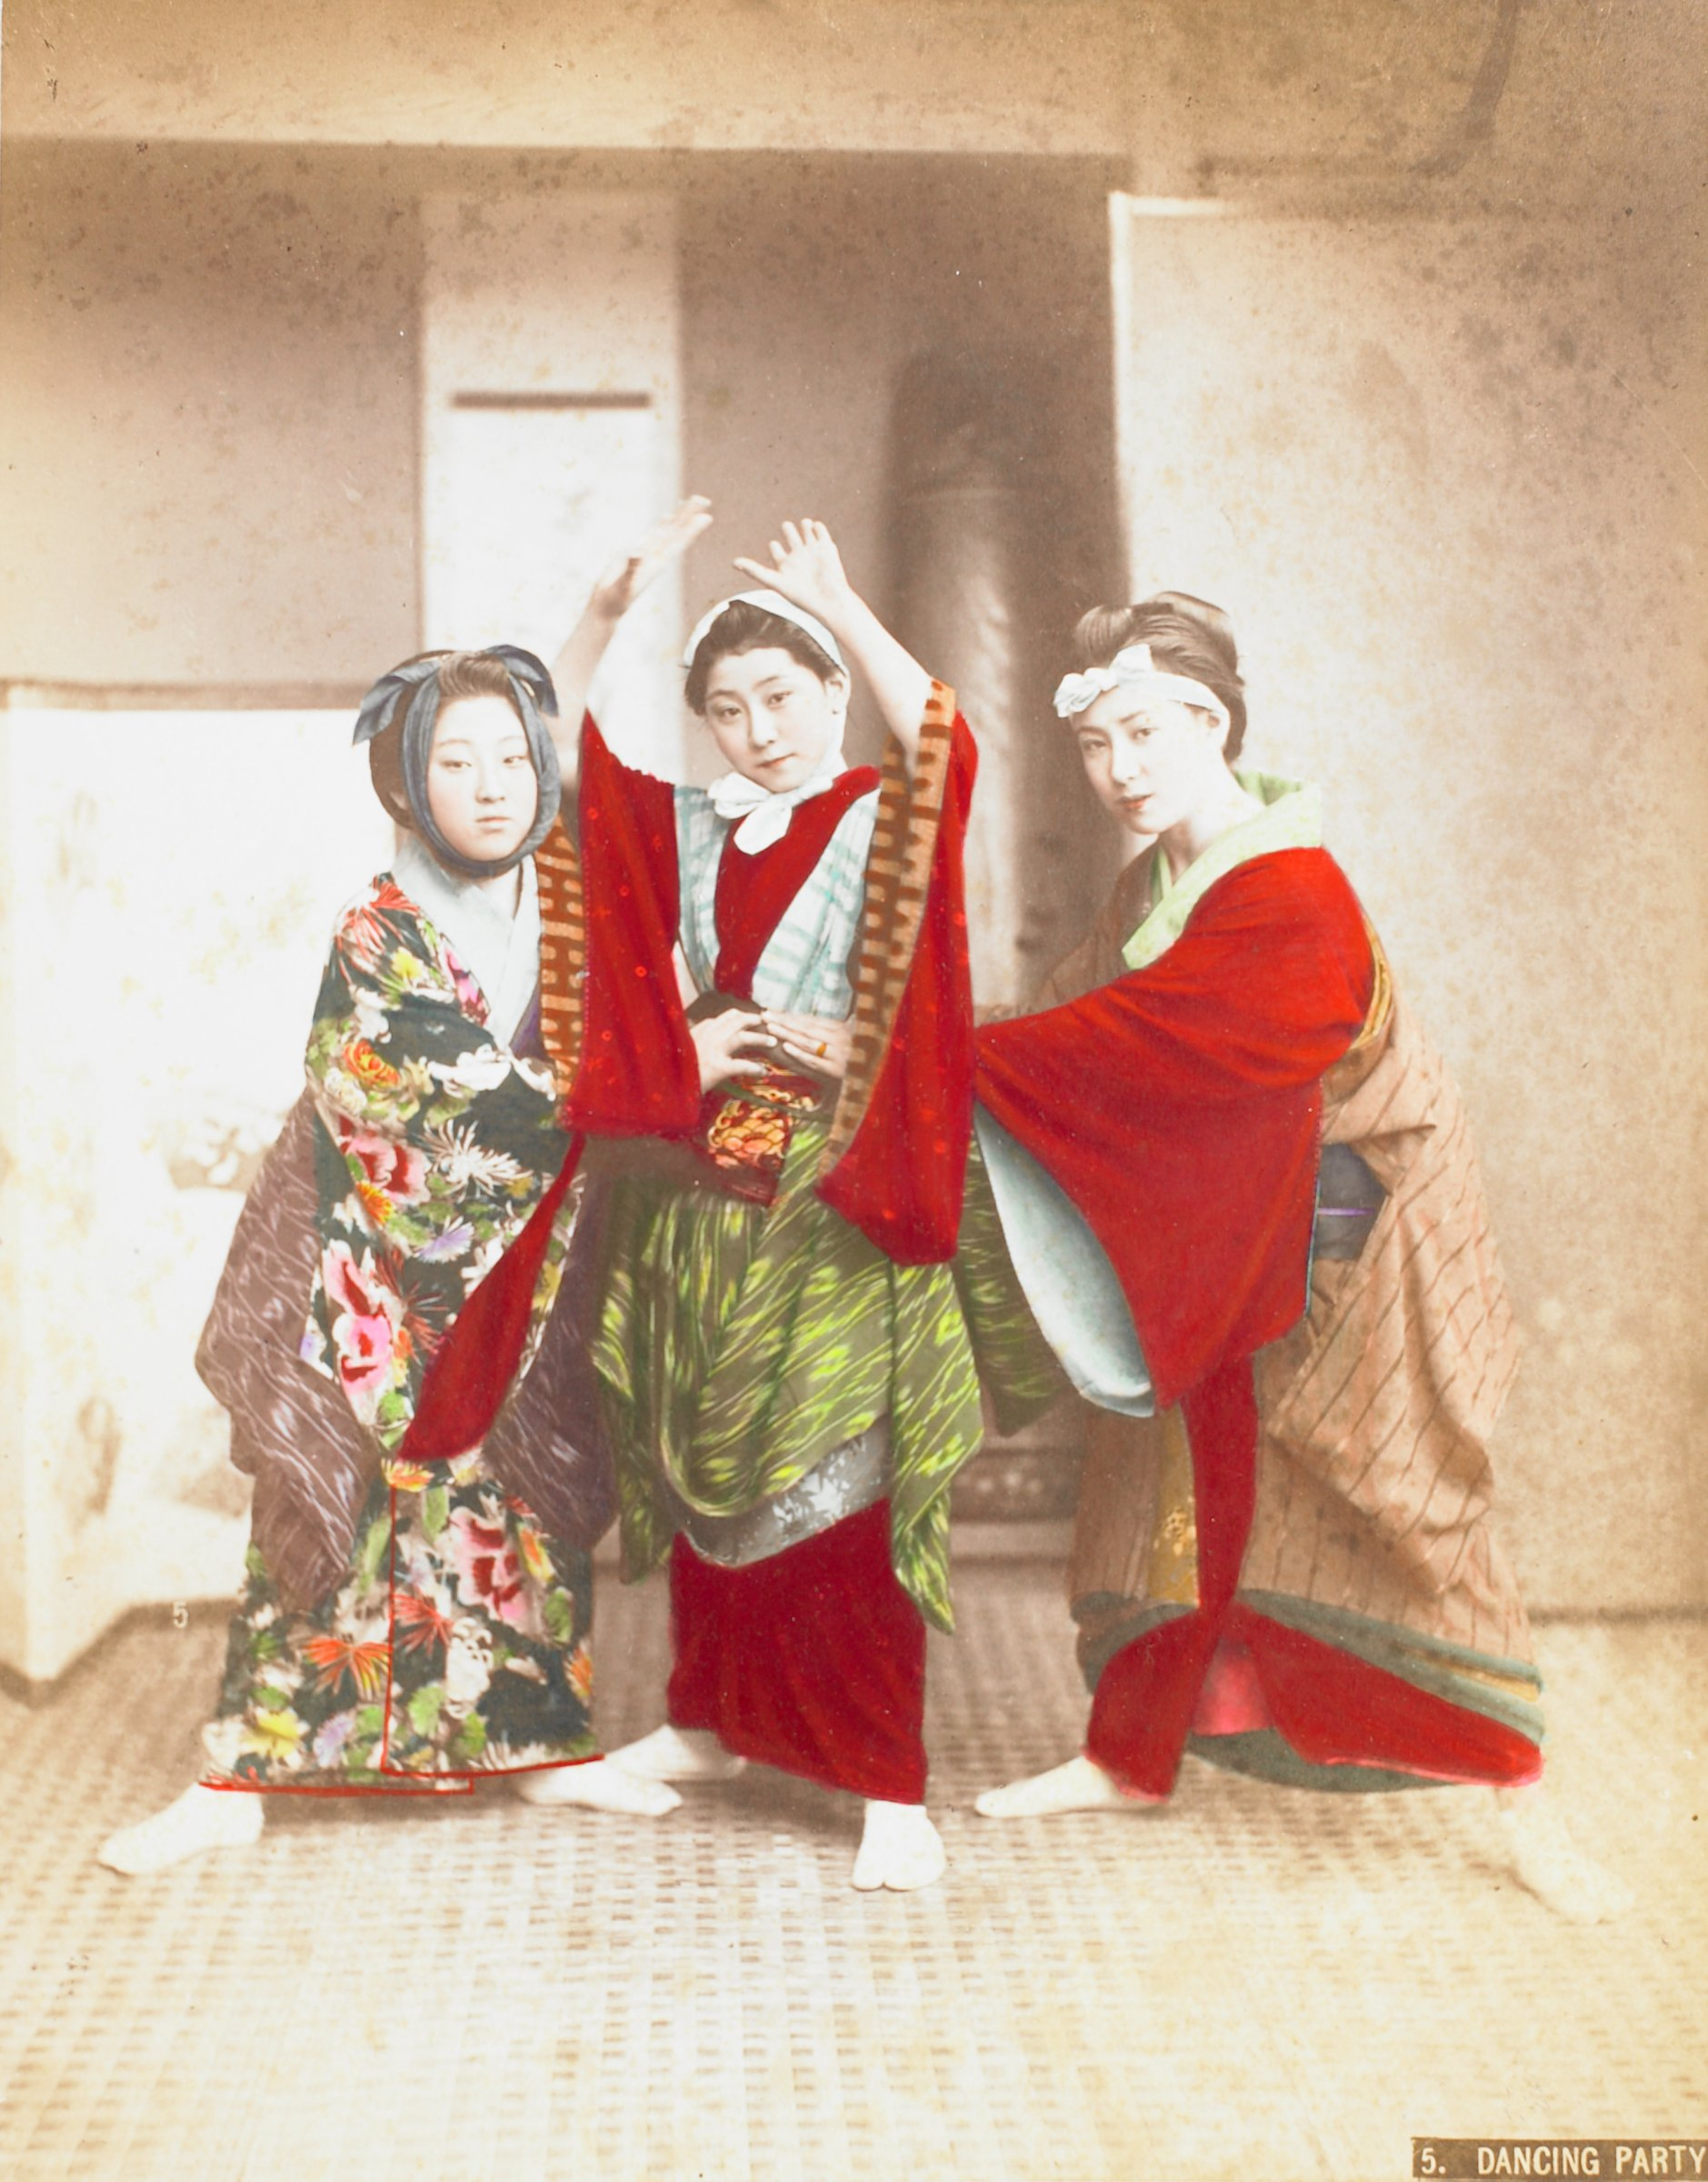 Dancing Party, Attributed to Kusakabe Kimbei, hand-colored albumen print mounted to album page